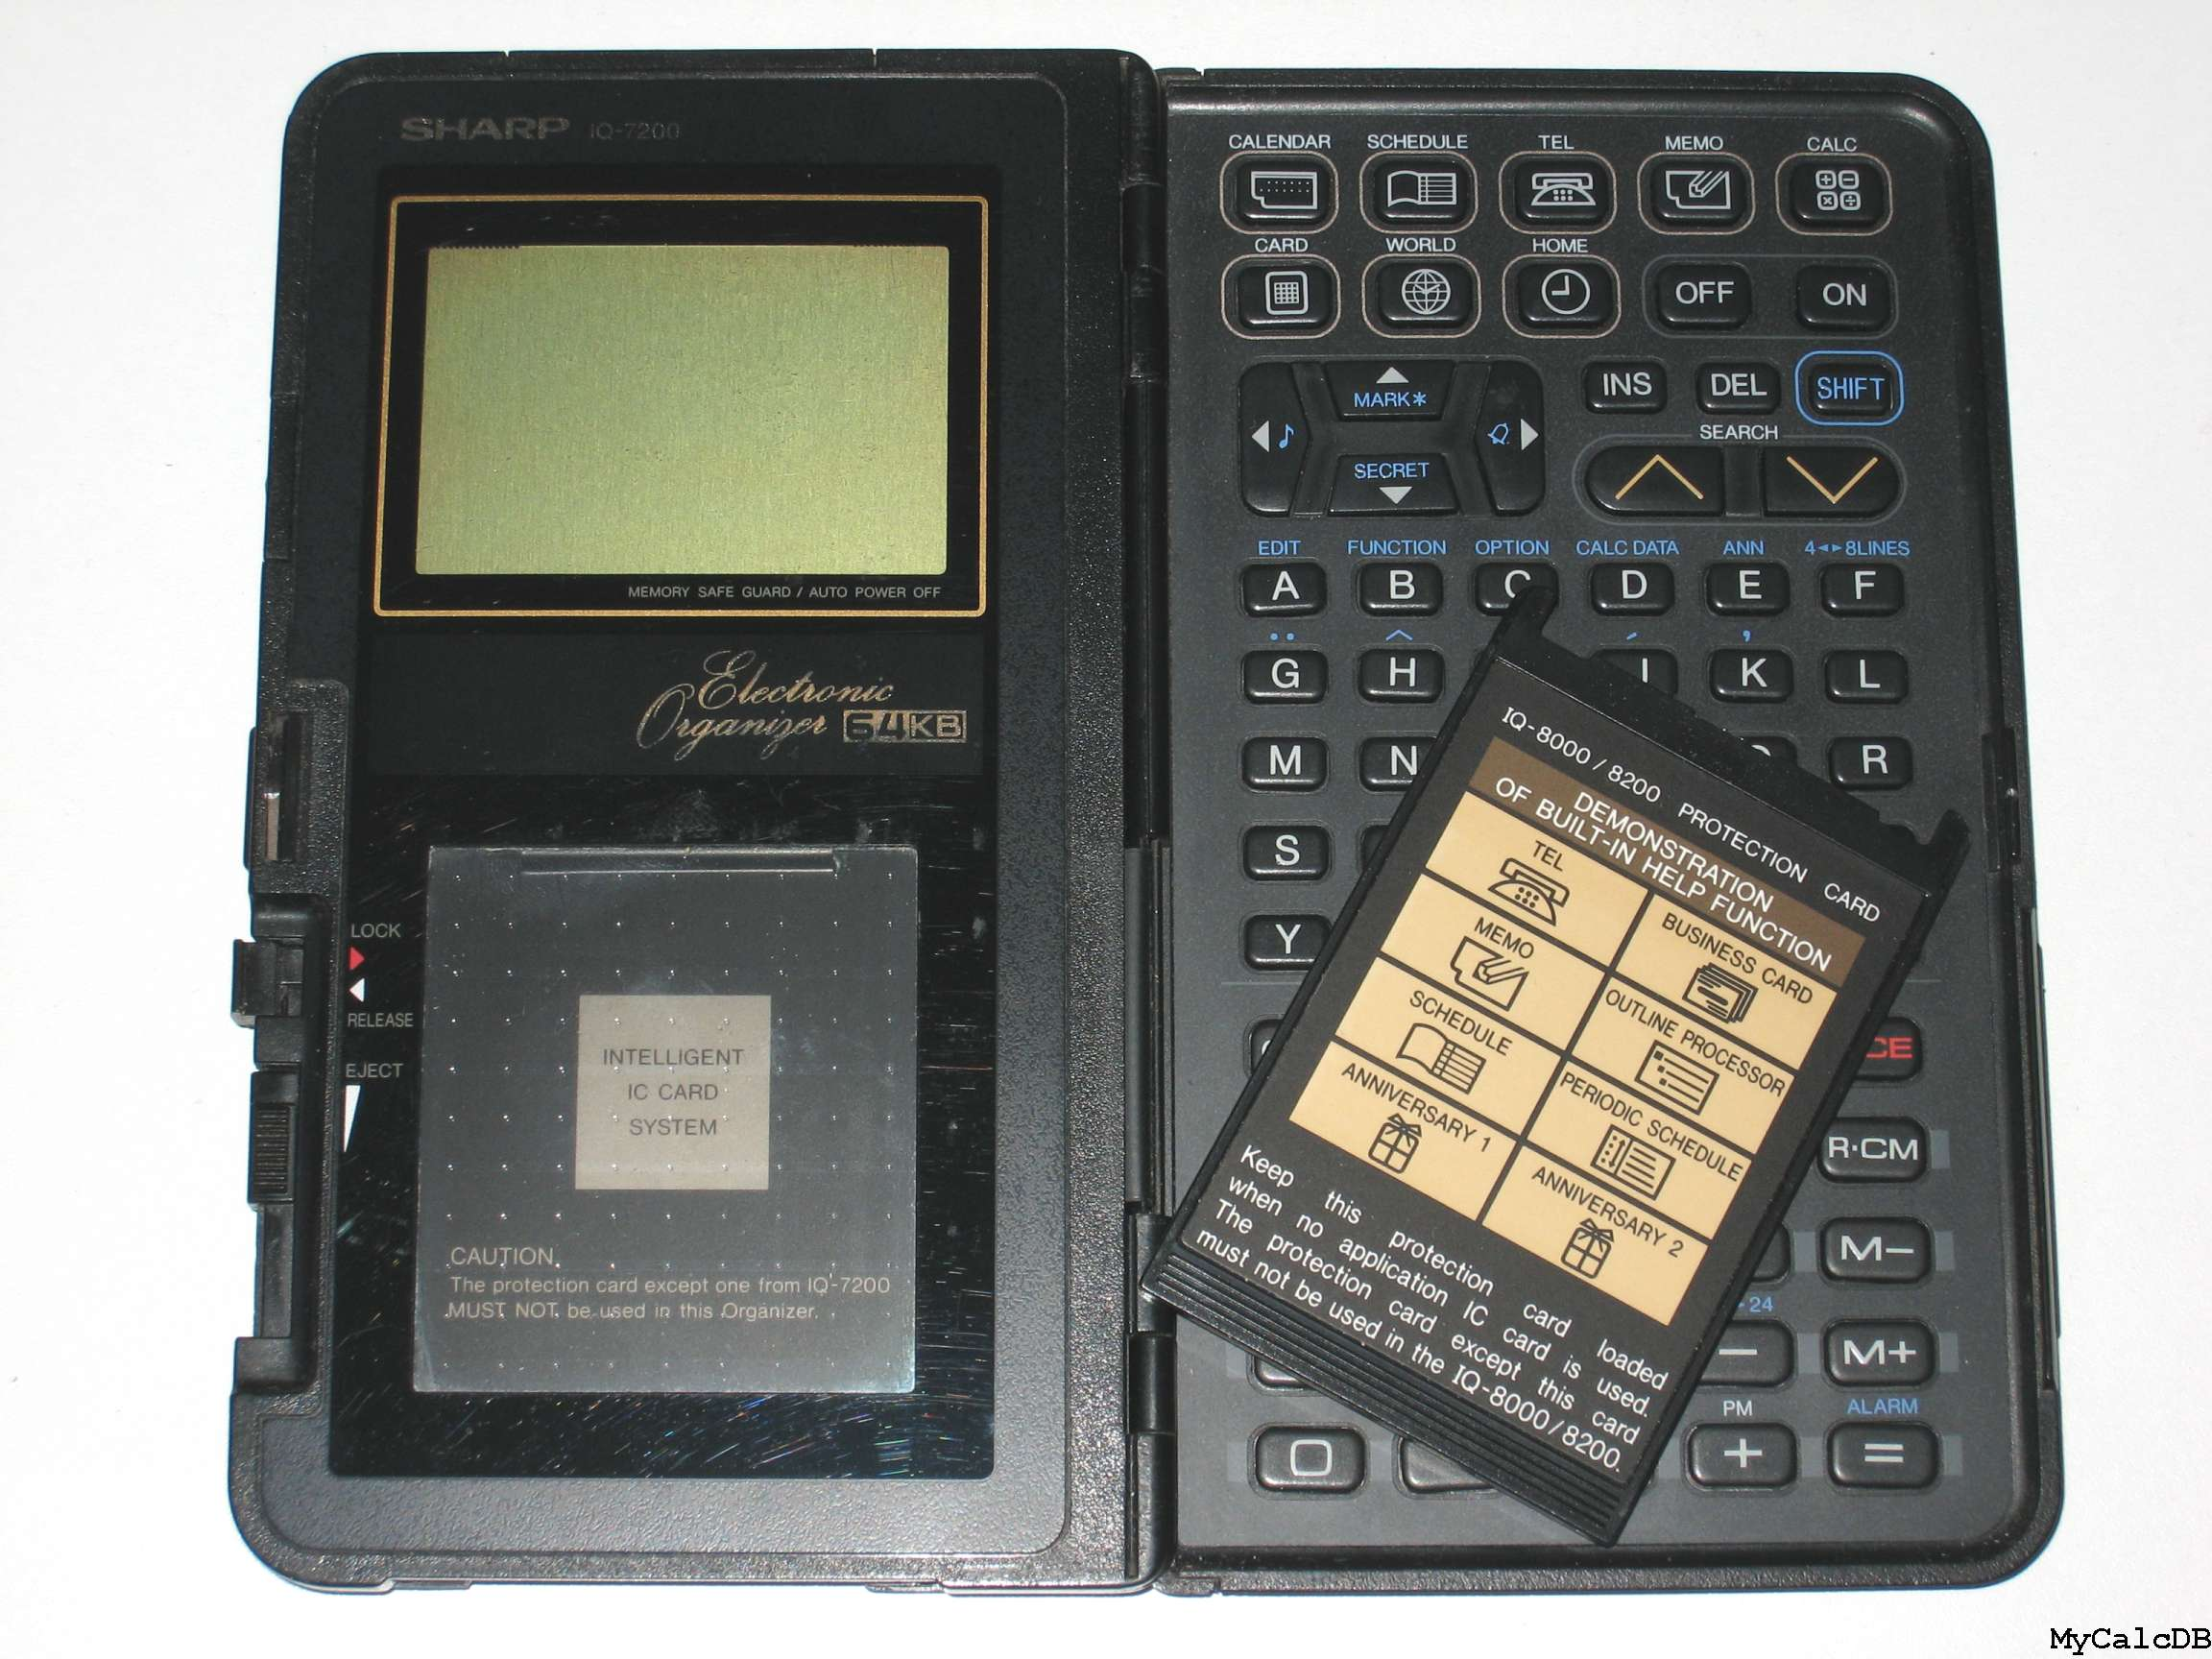 Sharp IQ-7200